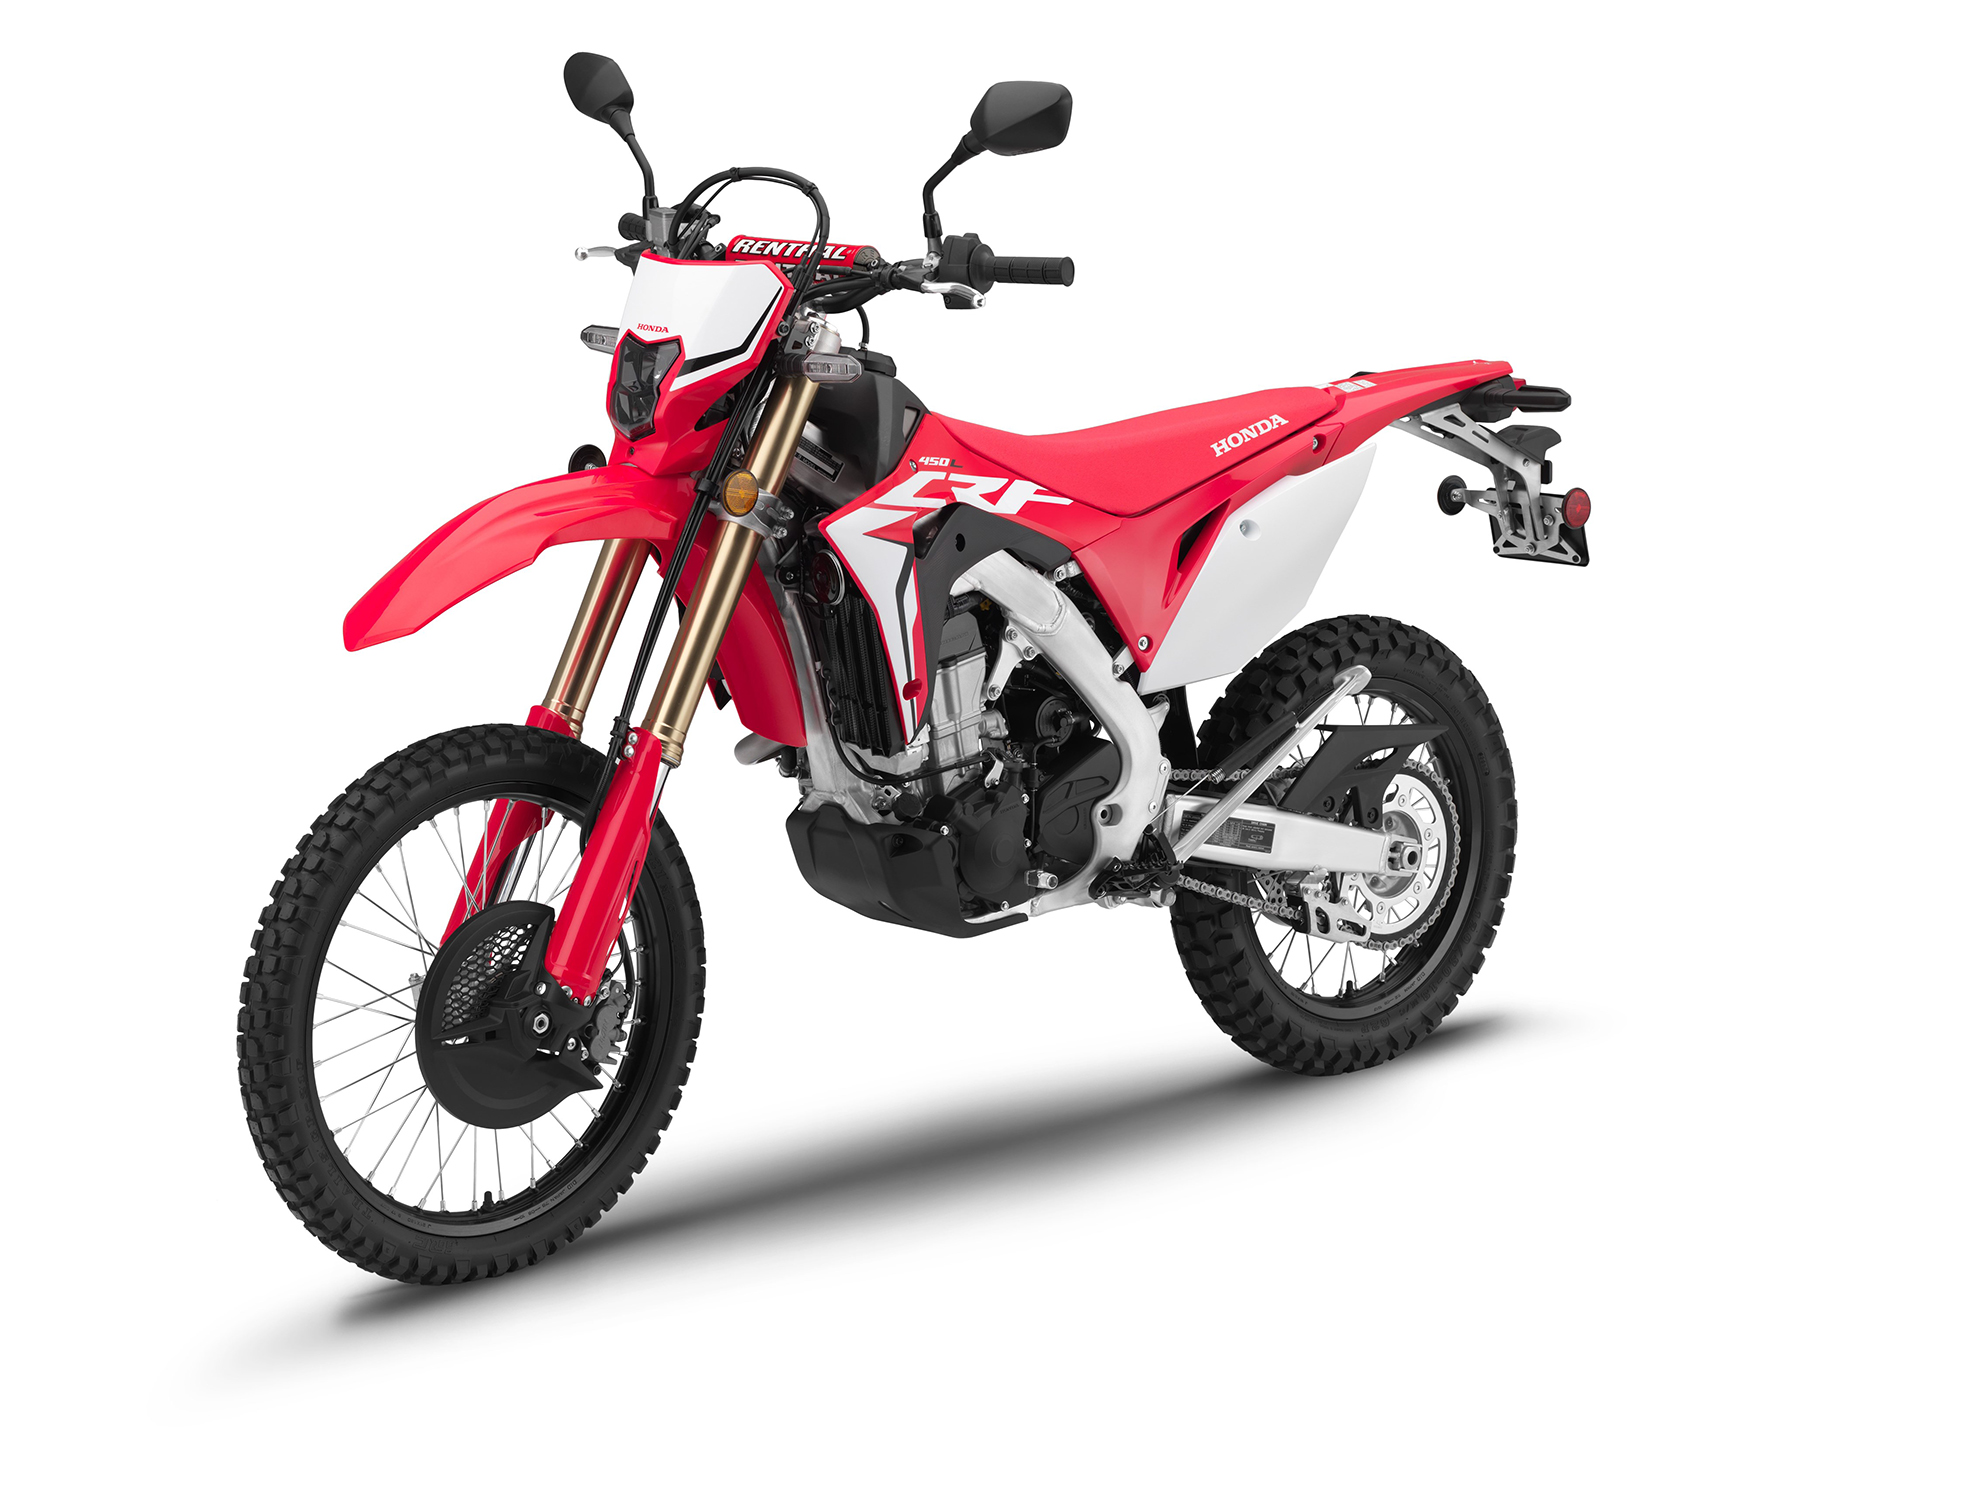 Honda Crf450r 2019 Motorcycle